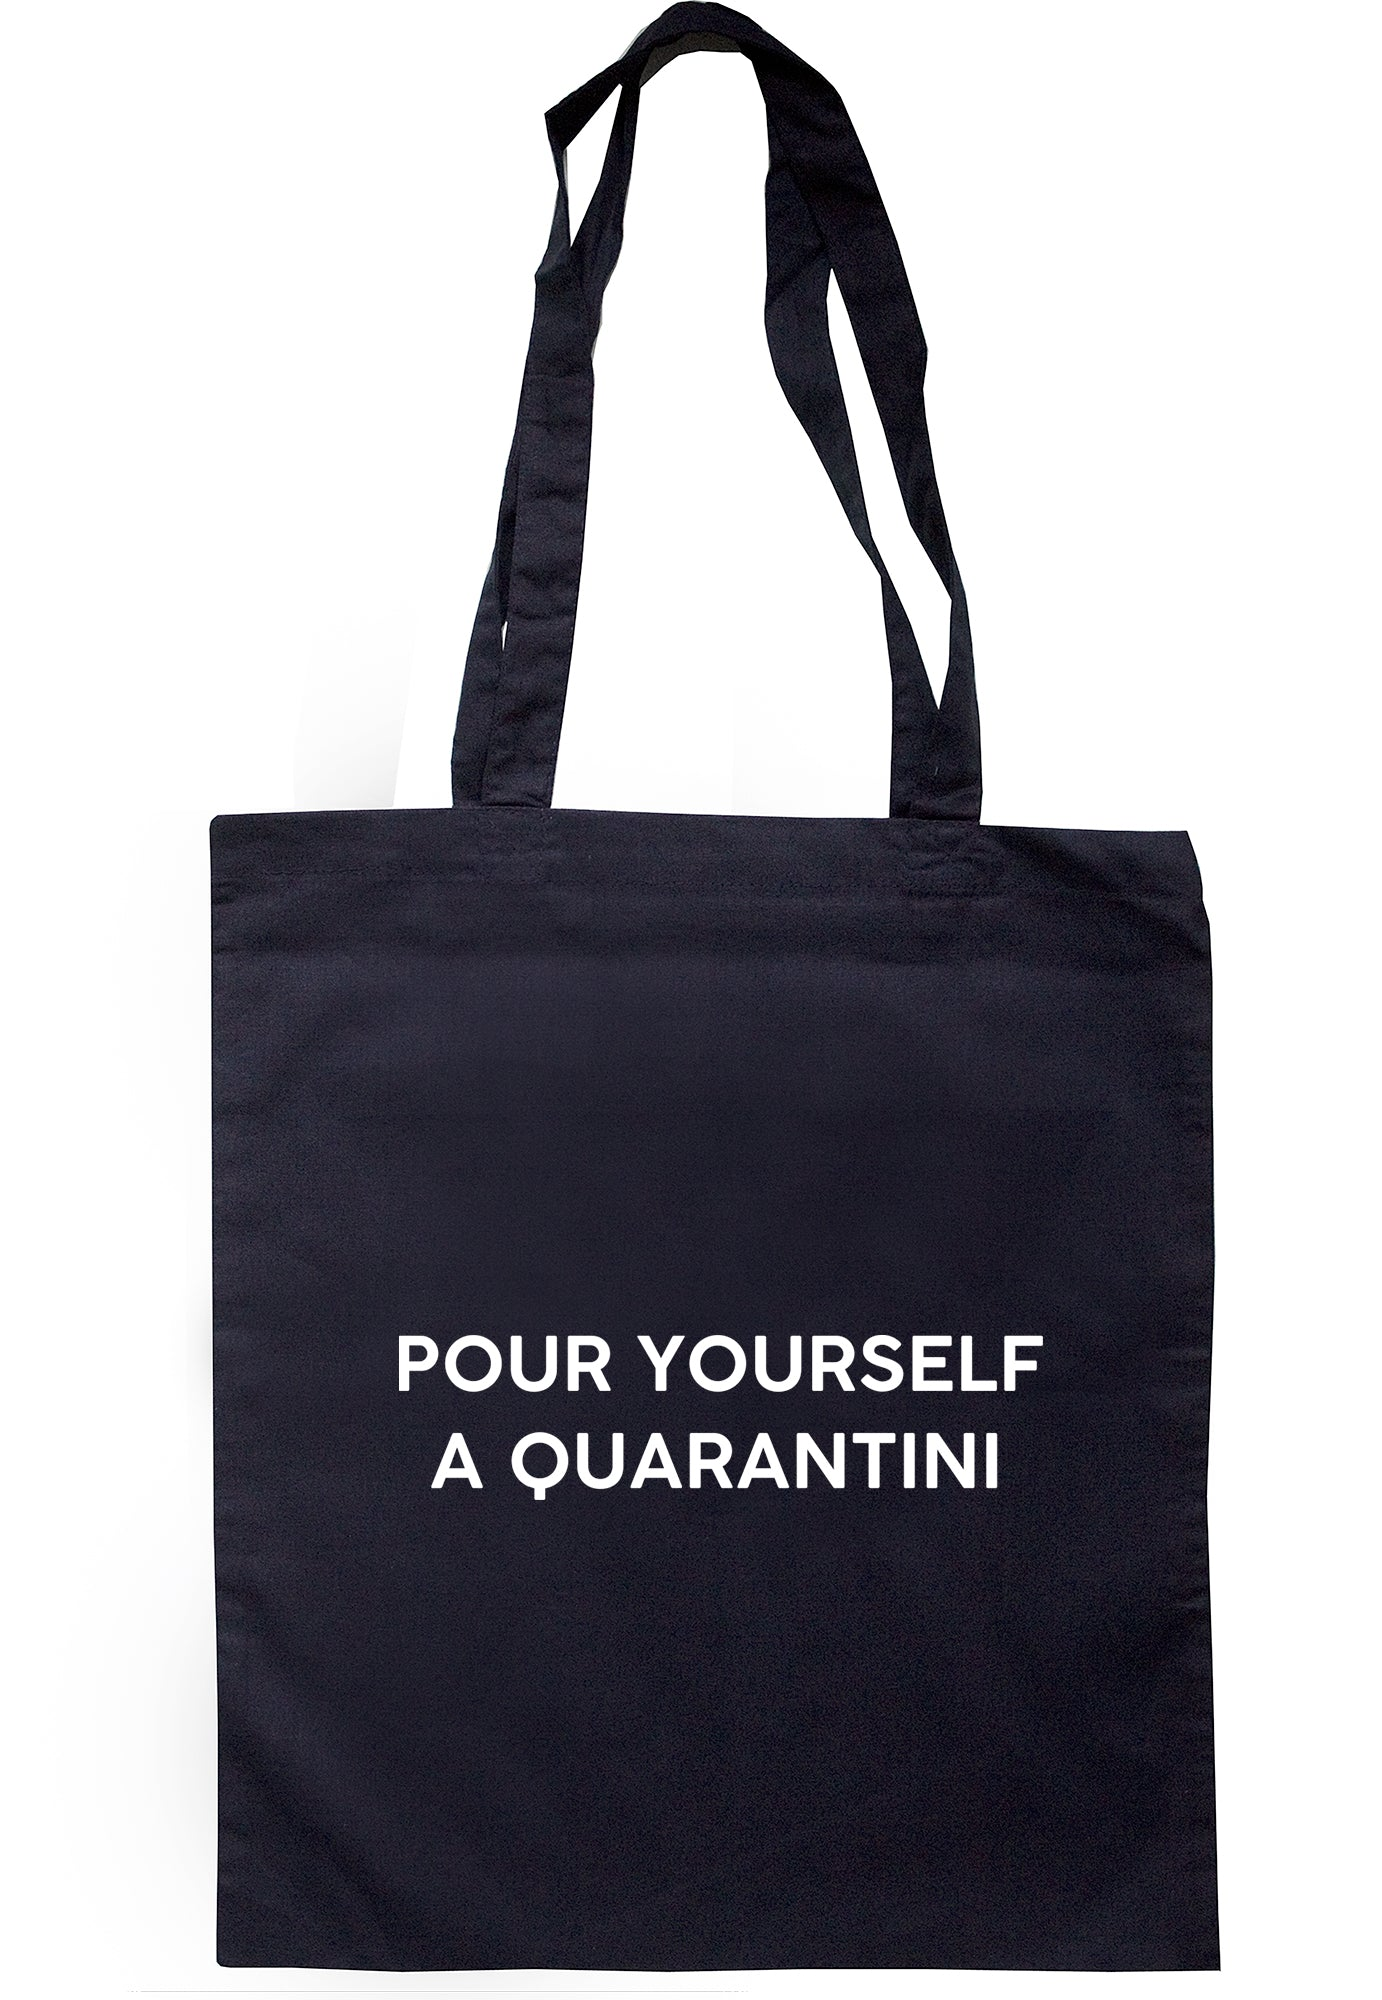 Pour Yourself A Quarantini Tote Bag S1129 - Illustrated Identity Ltd.